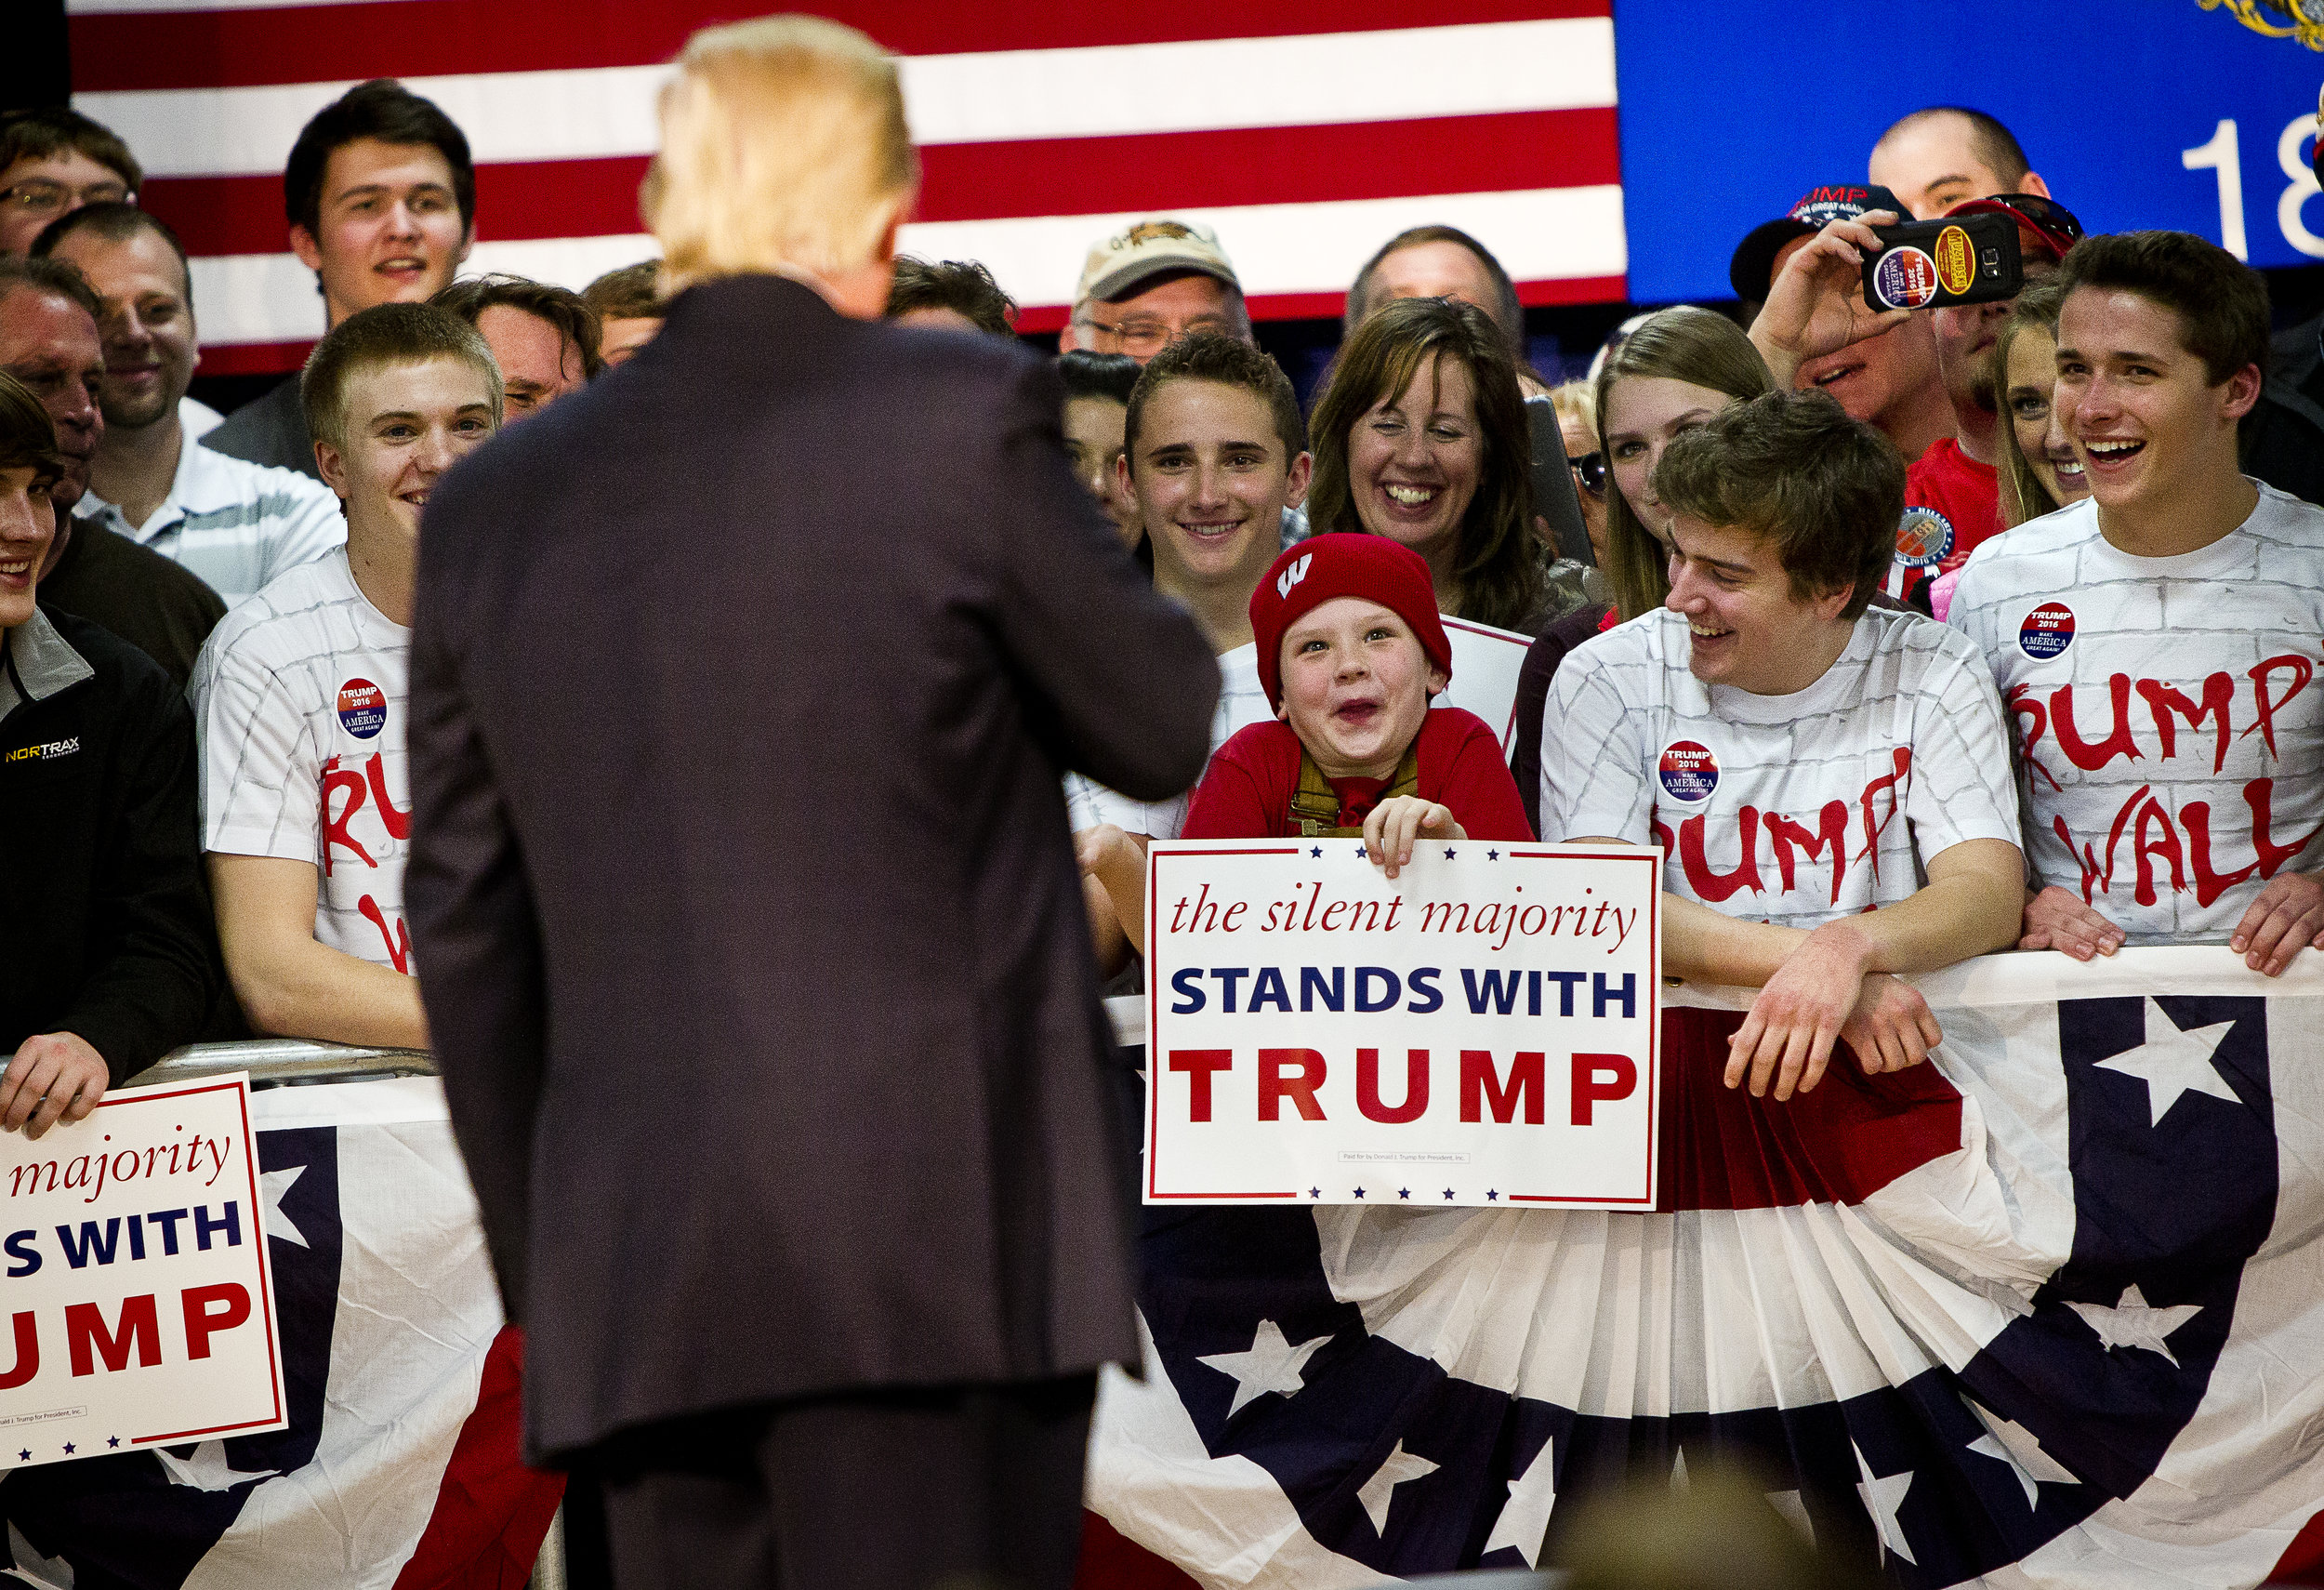 young Donald Trump supporter reacts to being talked about by the Republican U.S. presidential candidate at a campaign town hall event in Wausau, Wisconsin April 2, 2016.   REUTERS/Ben Brewer